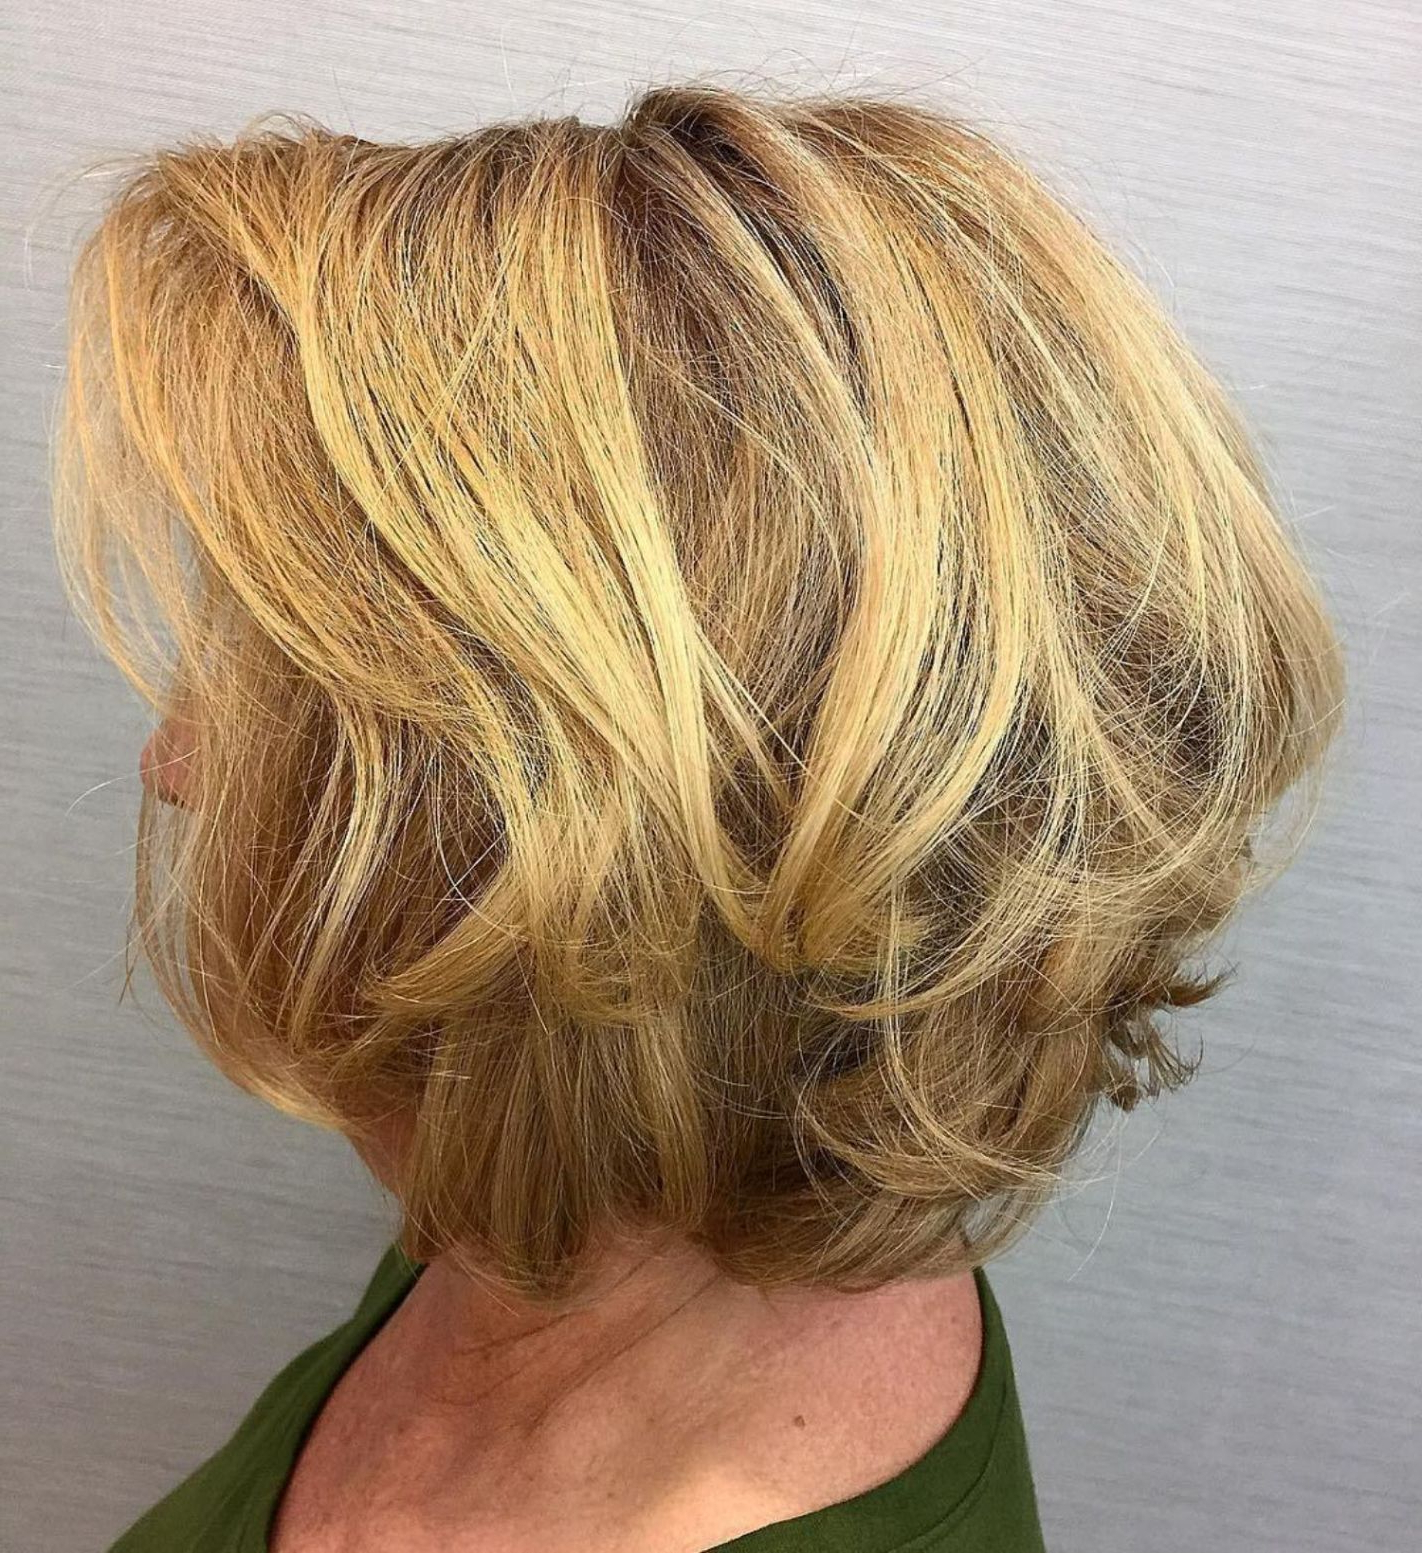 60 Best Hairstyles And Haircuts For Women Over 60 To Suit Any Taste Intended For Disheveled Burgundy Brown Bob Hairstyles (Gallery 7 of 25)